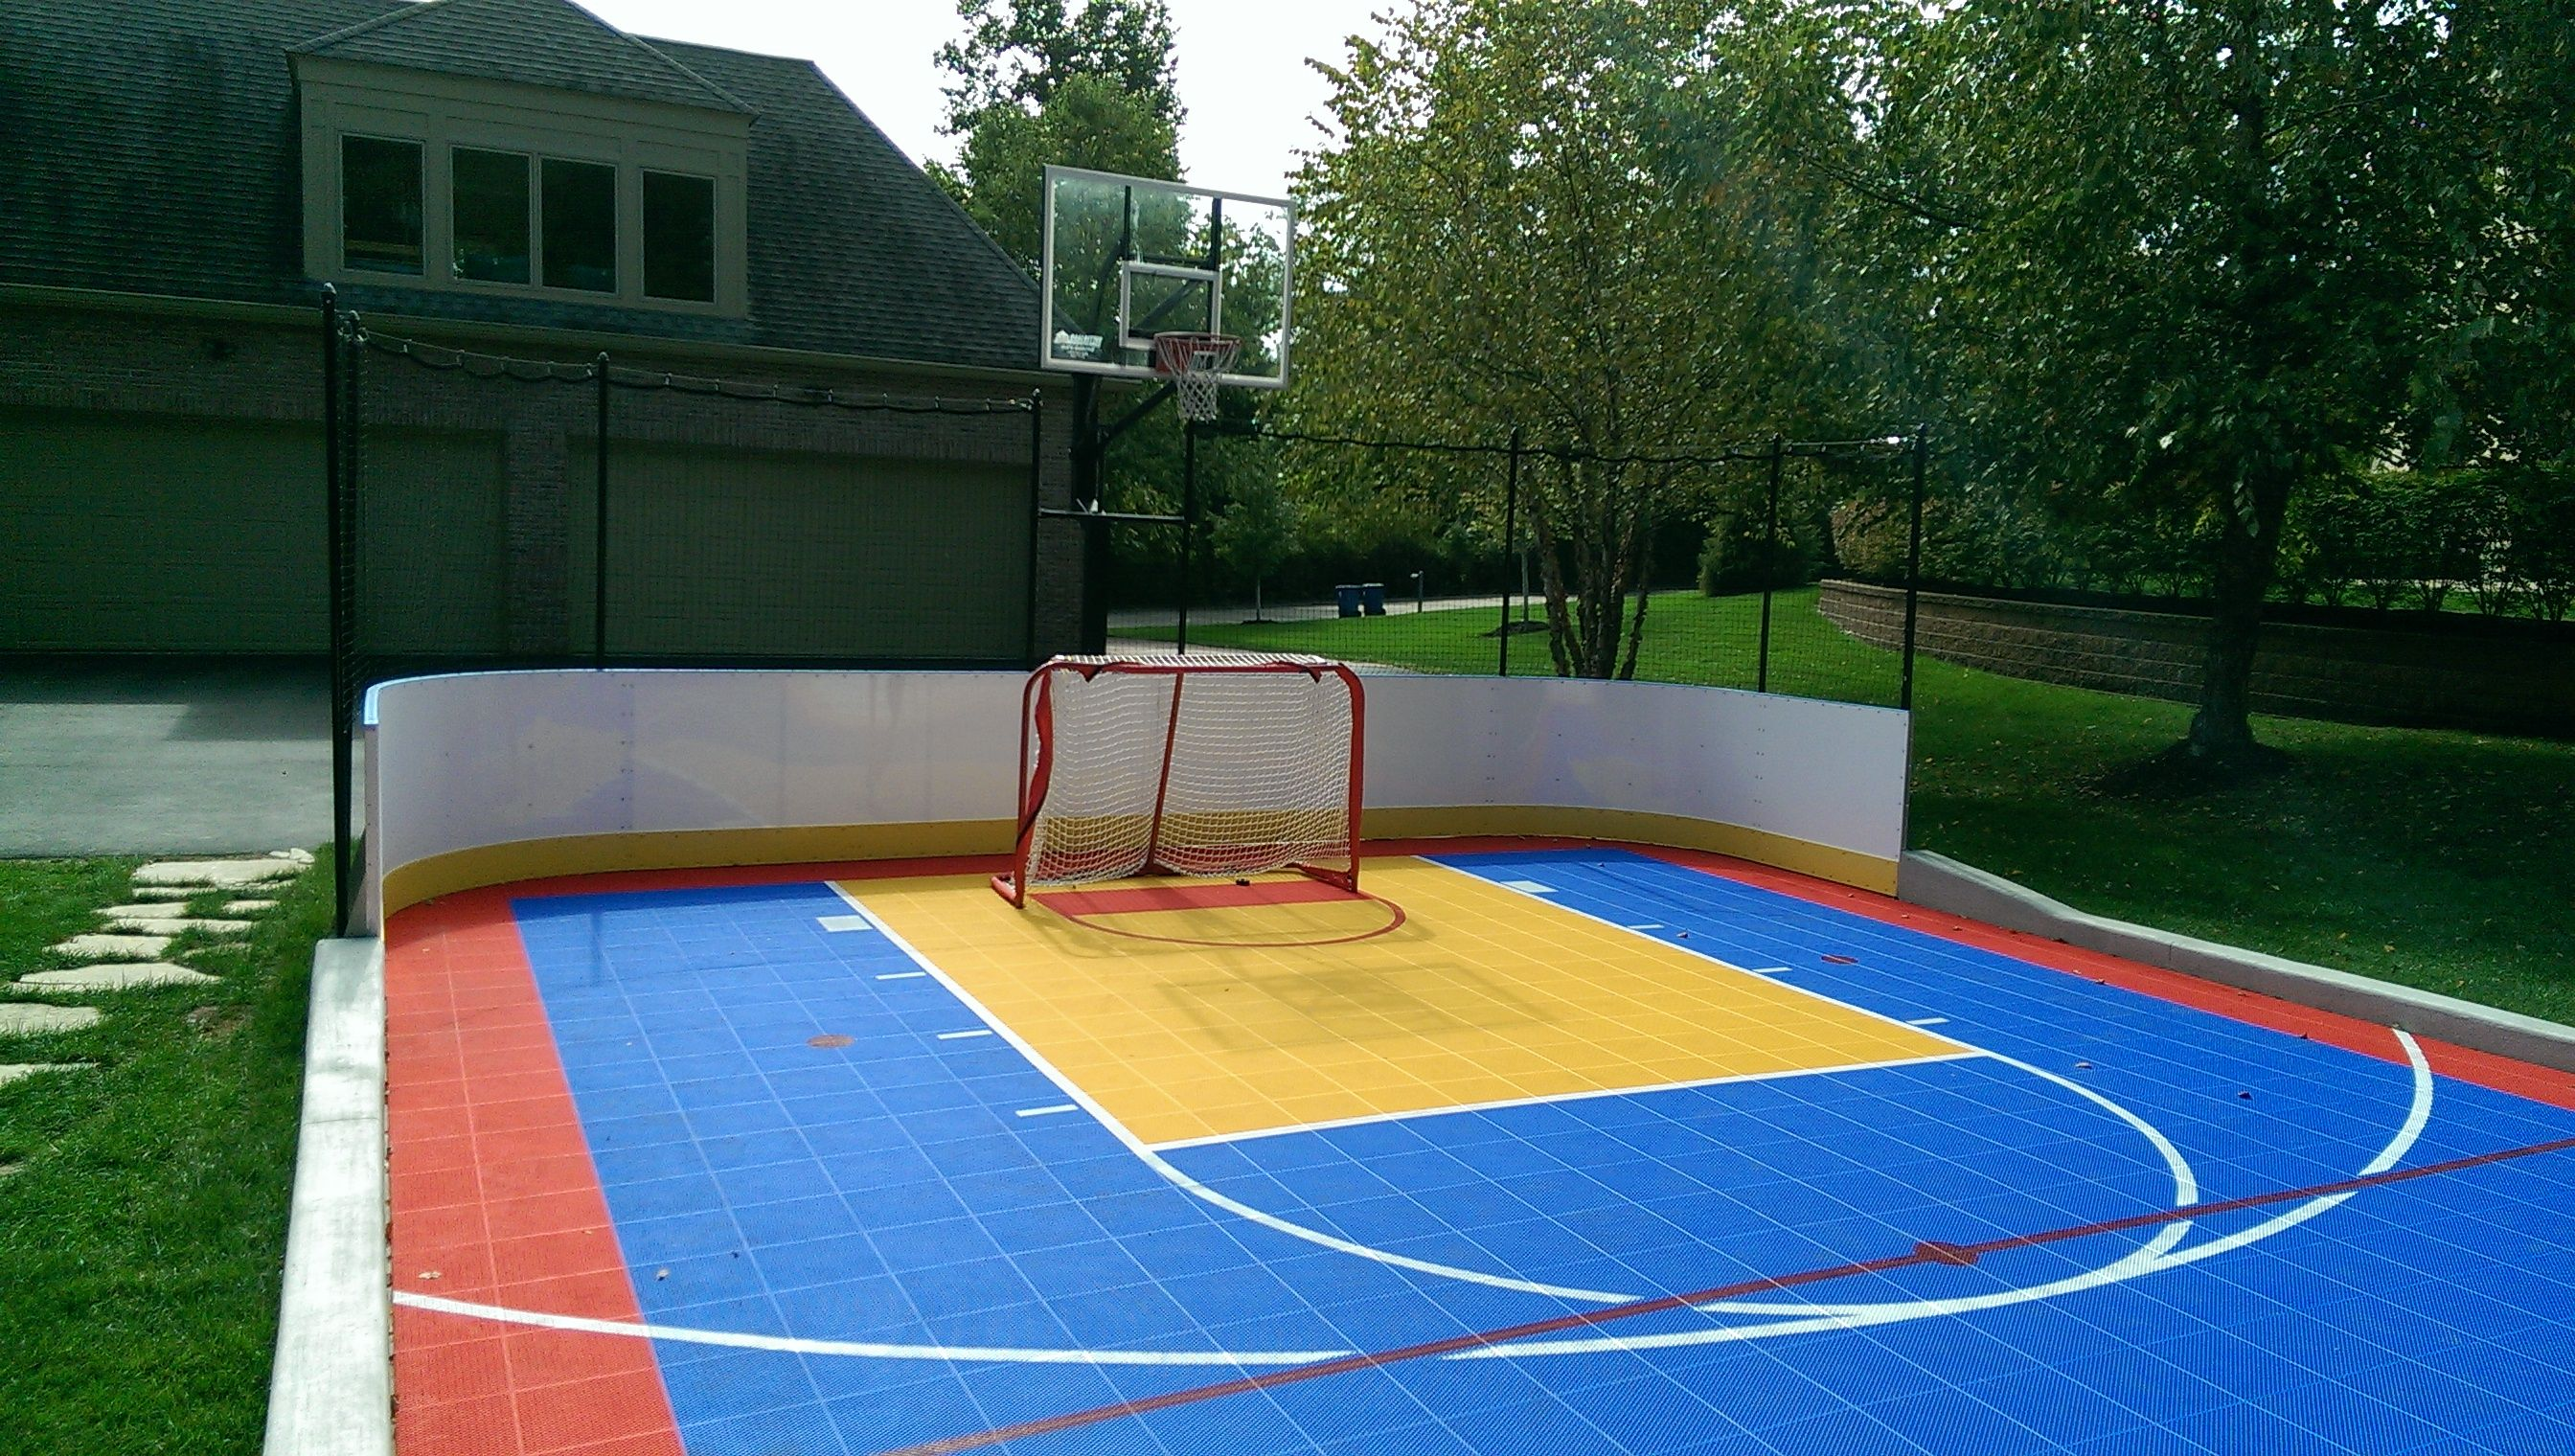 Backyard MultiSport Game Court Yard Pinterest Sports Games - Backyard roller hockey rink